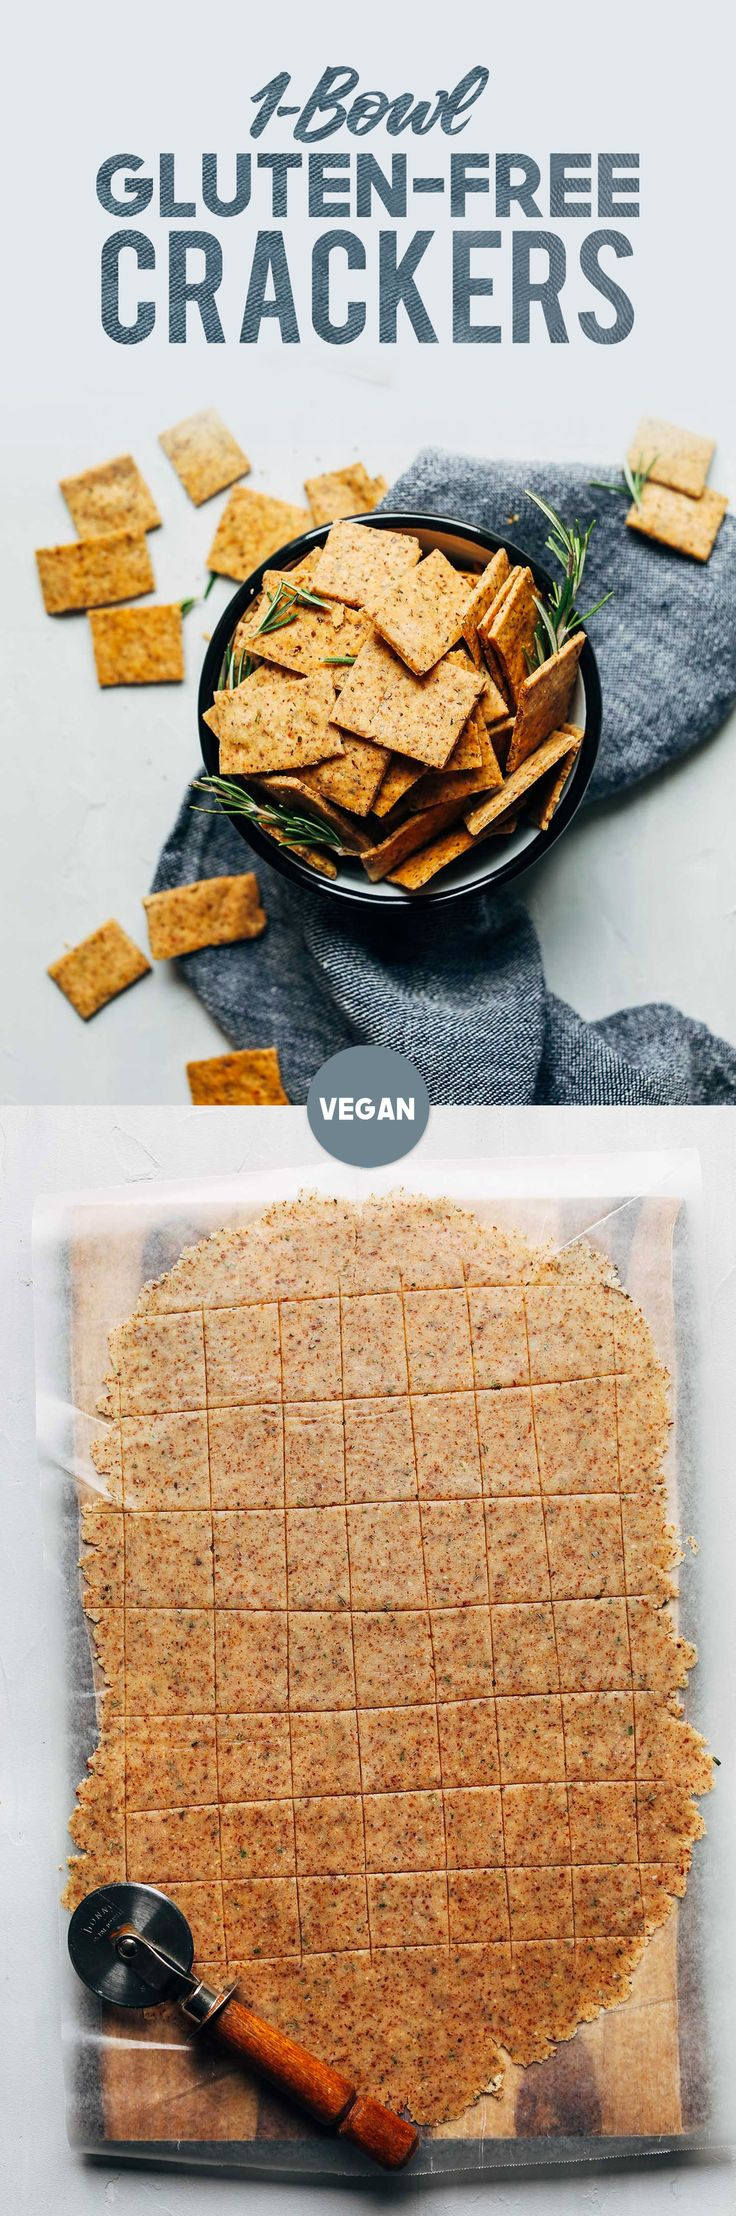 EASY Vegan Gluten-Free Crackers! 7 Ingredients, 1 Bowl, SUPER crispy and delicious! Ingredients: flour of choice, almond meal or oat flour, baking powder, flaxseed meal, rosemary, sea salt, oil